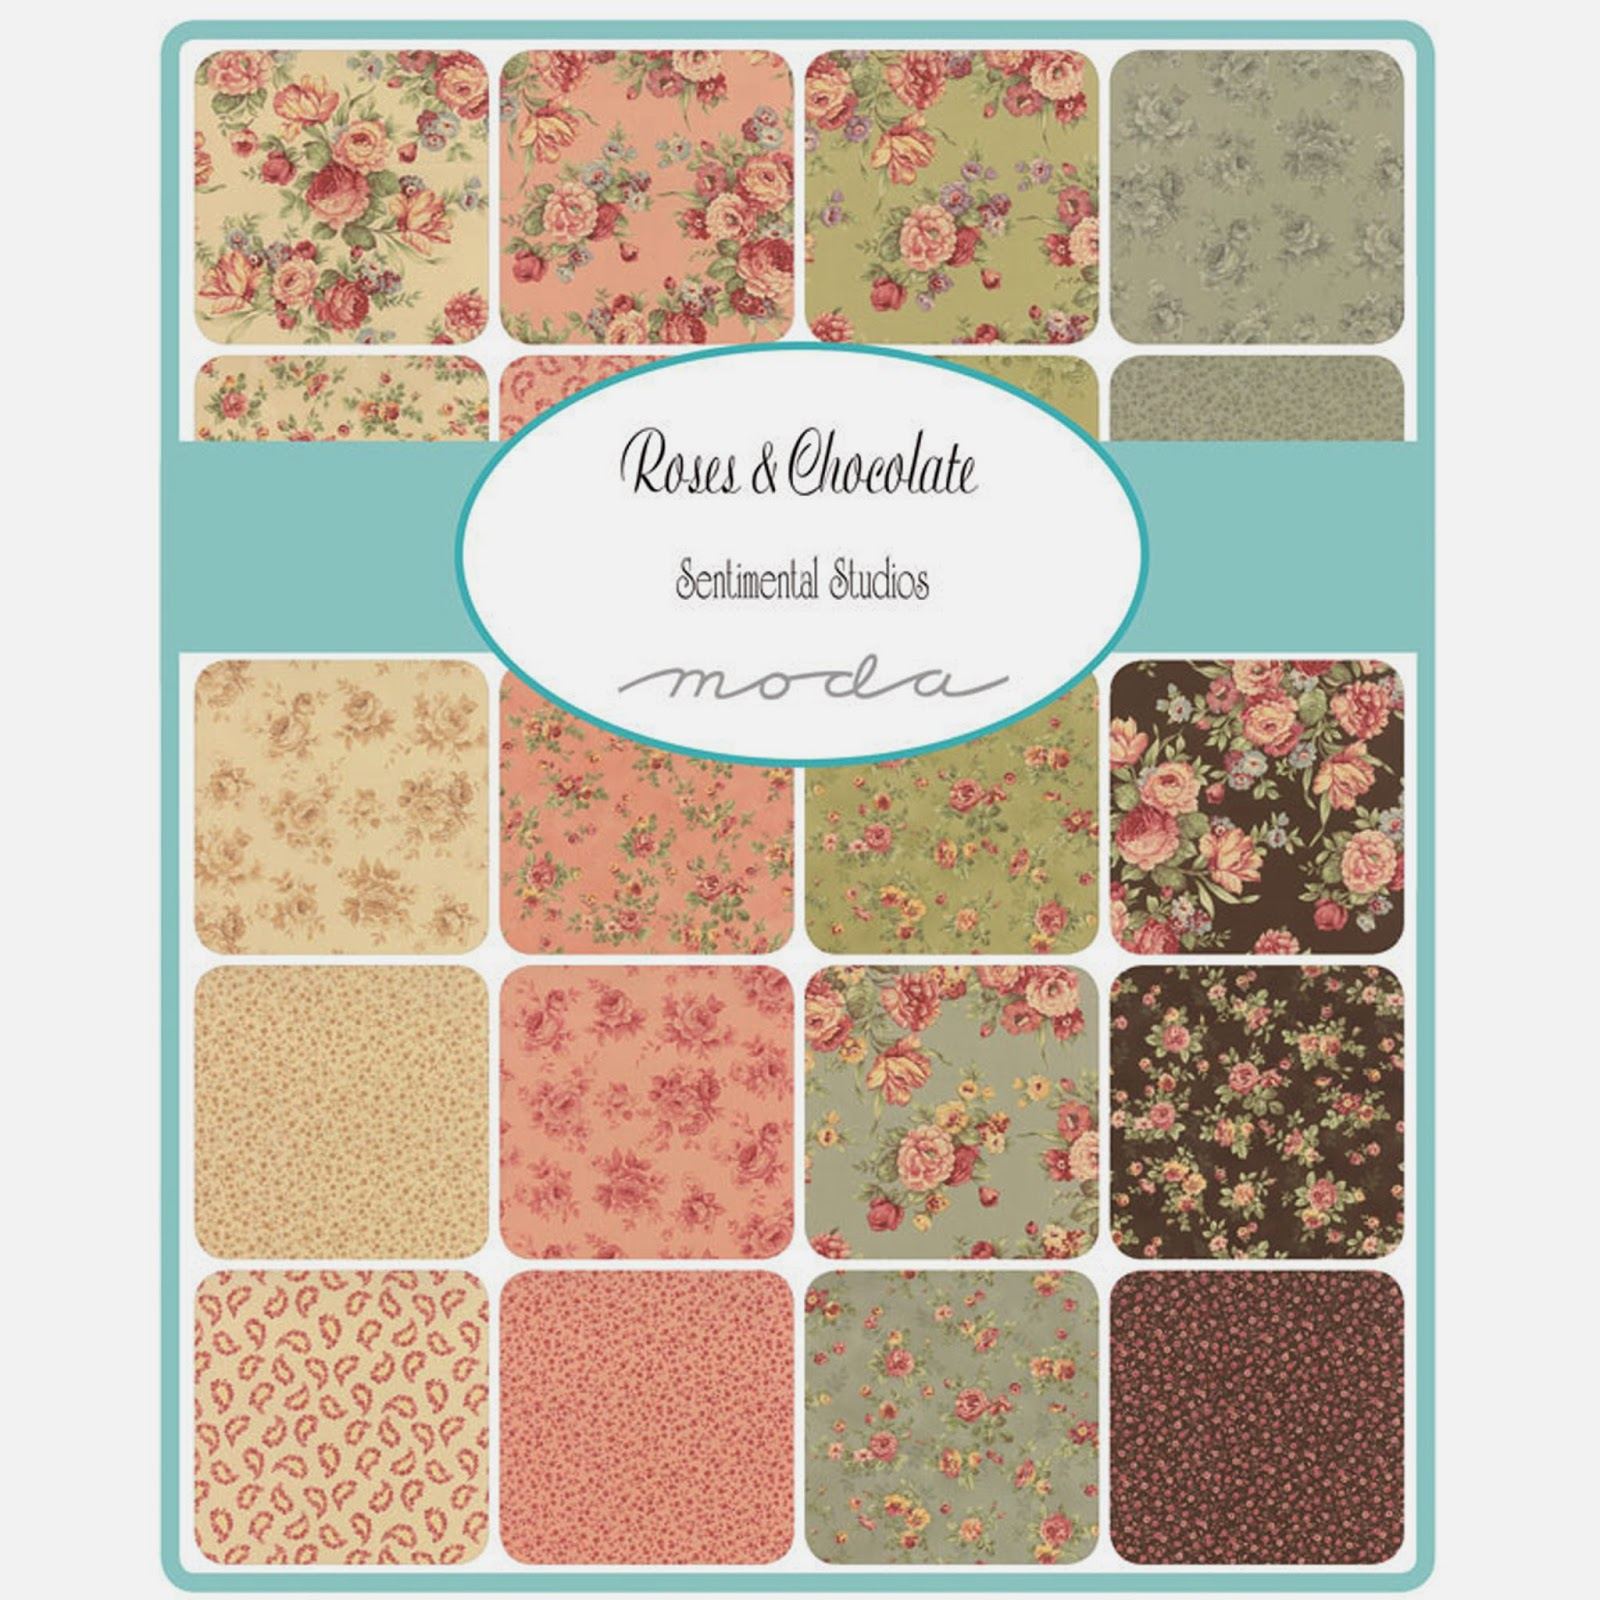 Moda ROSES & CHOCOLATE Fabric by Sentimental Studios for Moda Fabrics